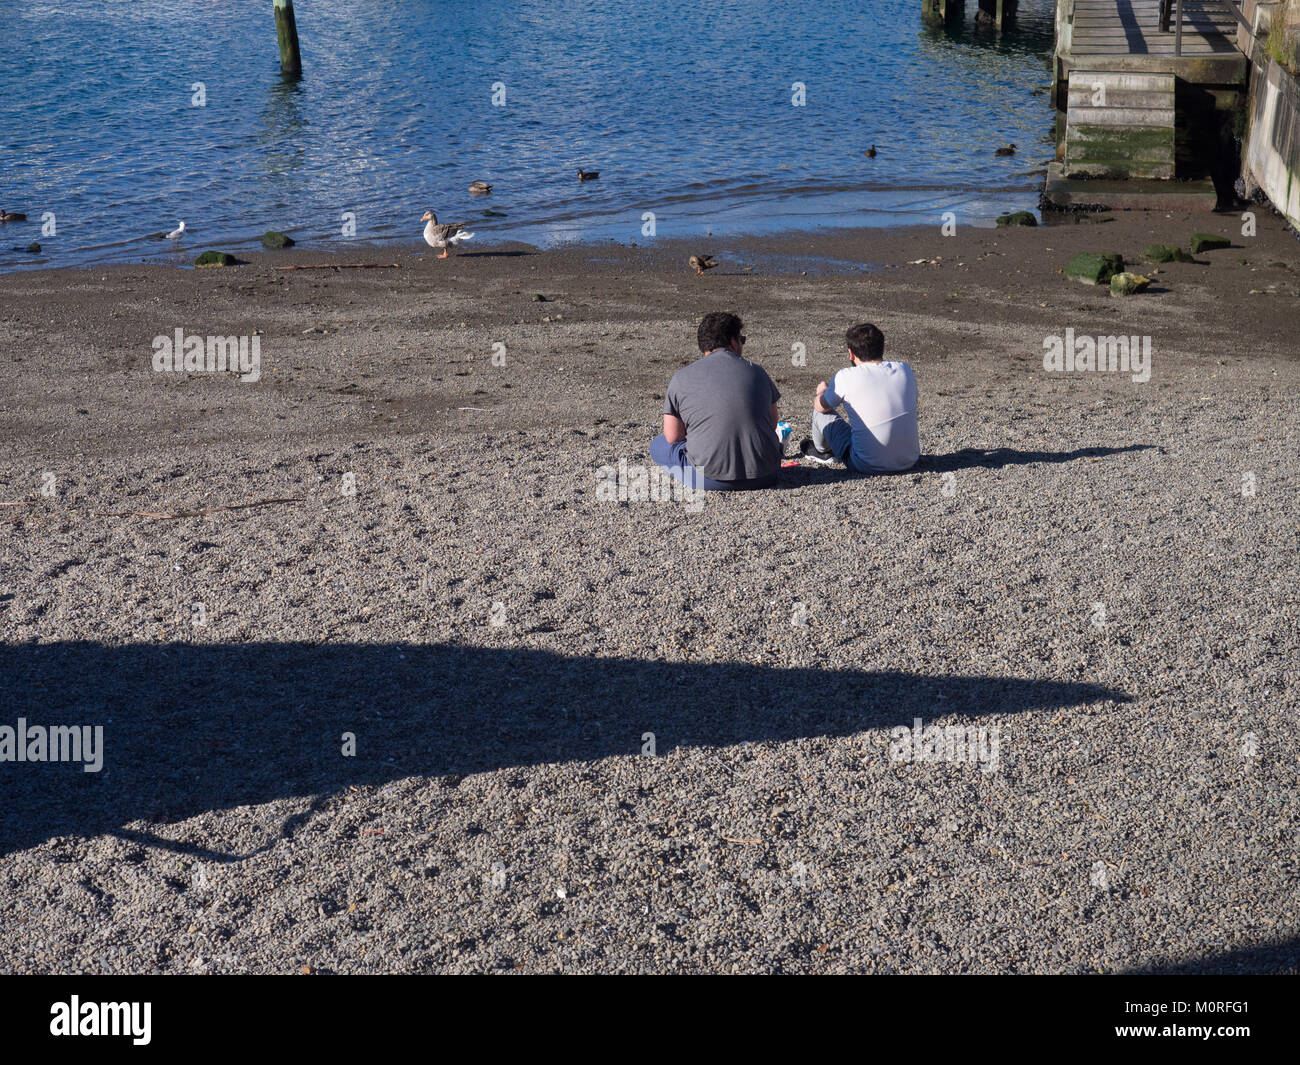 Two People Sitting On The Beach - Stock Image